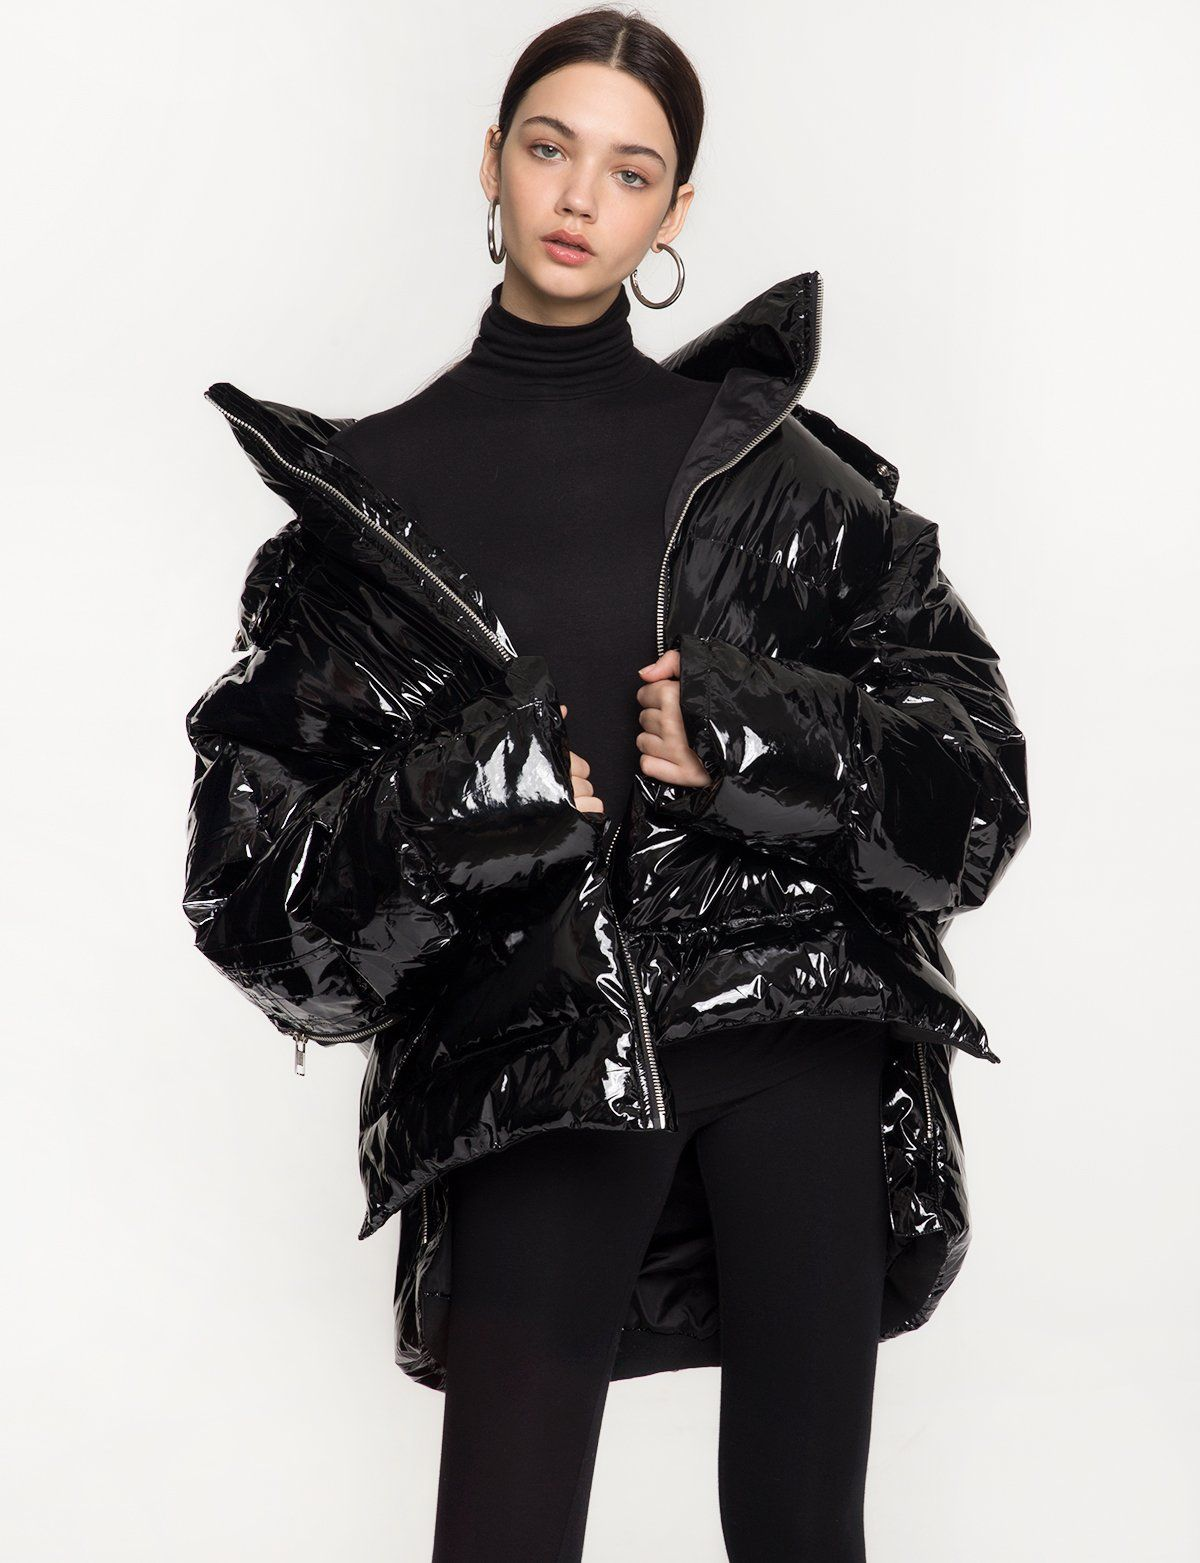 Black Shiny Oversize Puffy Jacket With Hood And Zip Bottom Made By Us100 Polyester With Down Lininglength Puffy Jacket Outfit Puffy Coat Puffer Jacket Outfit [ 1563 x 1200 Pixel ]